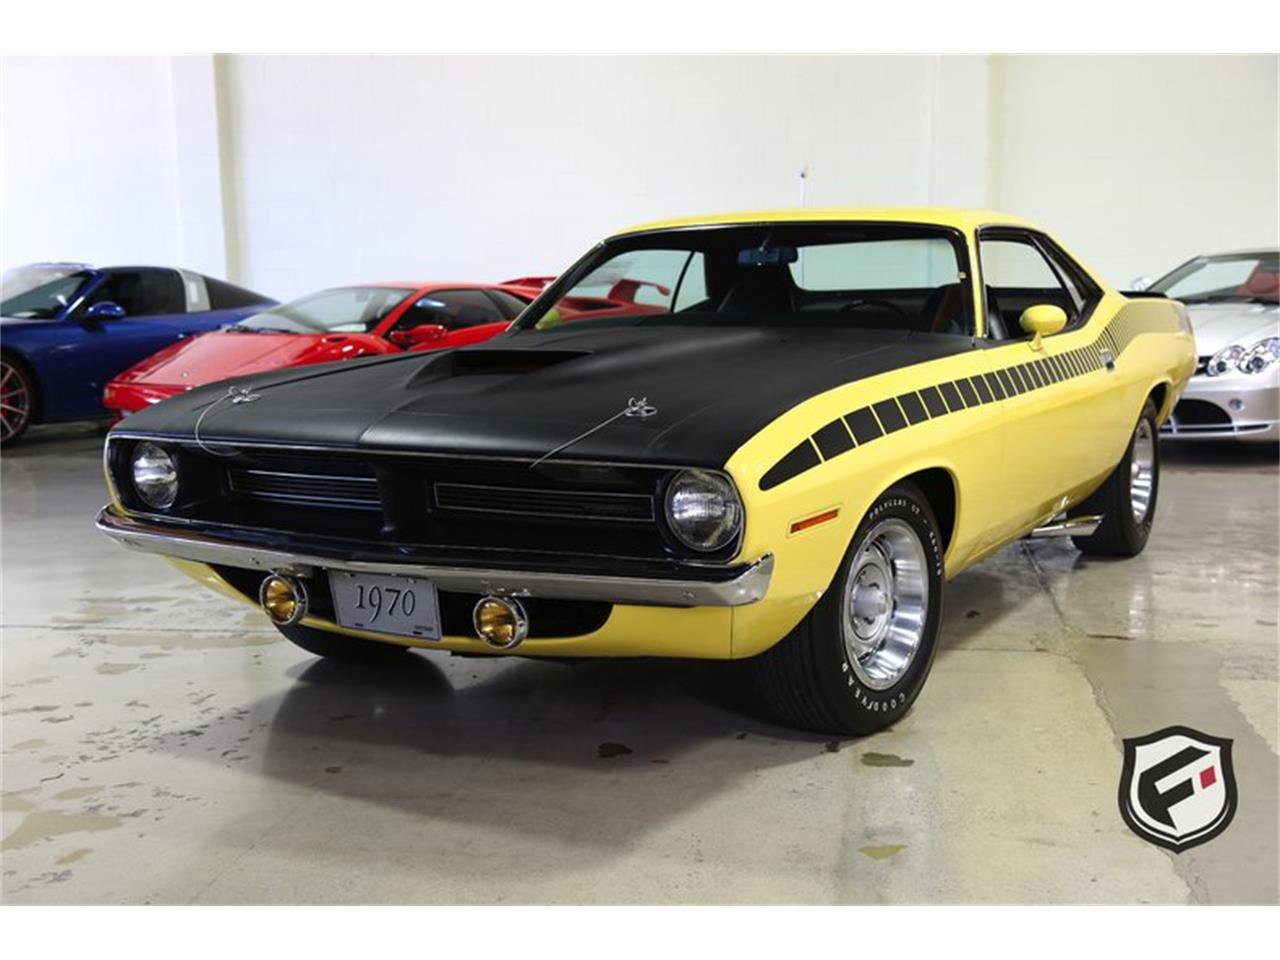 Large Picture of Classic 1970 Plymouth Cuda located in Chatsworth California - $109,900.00 - MBSV